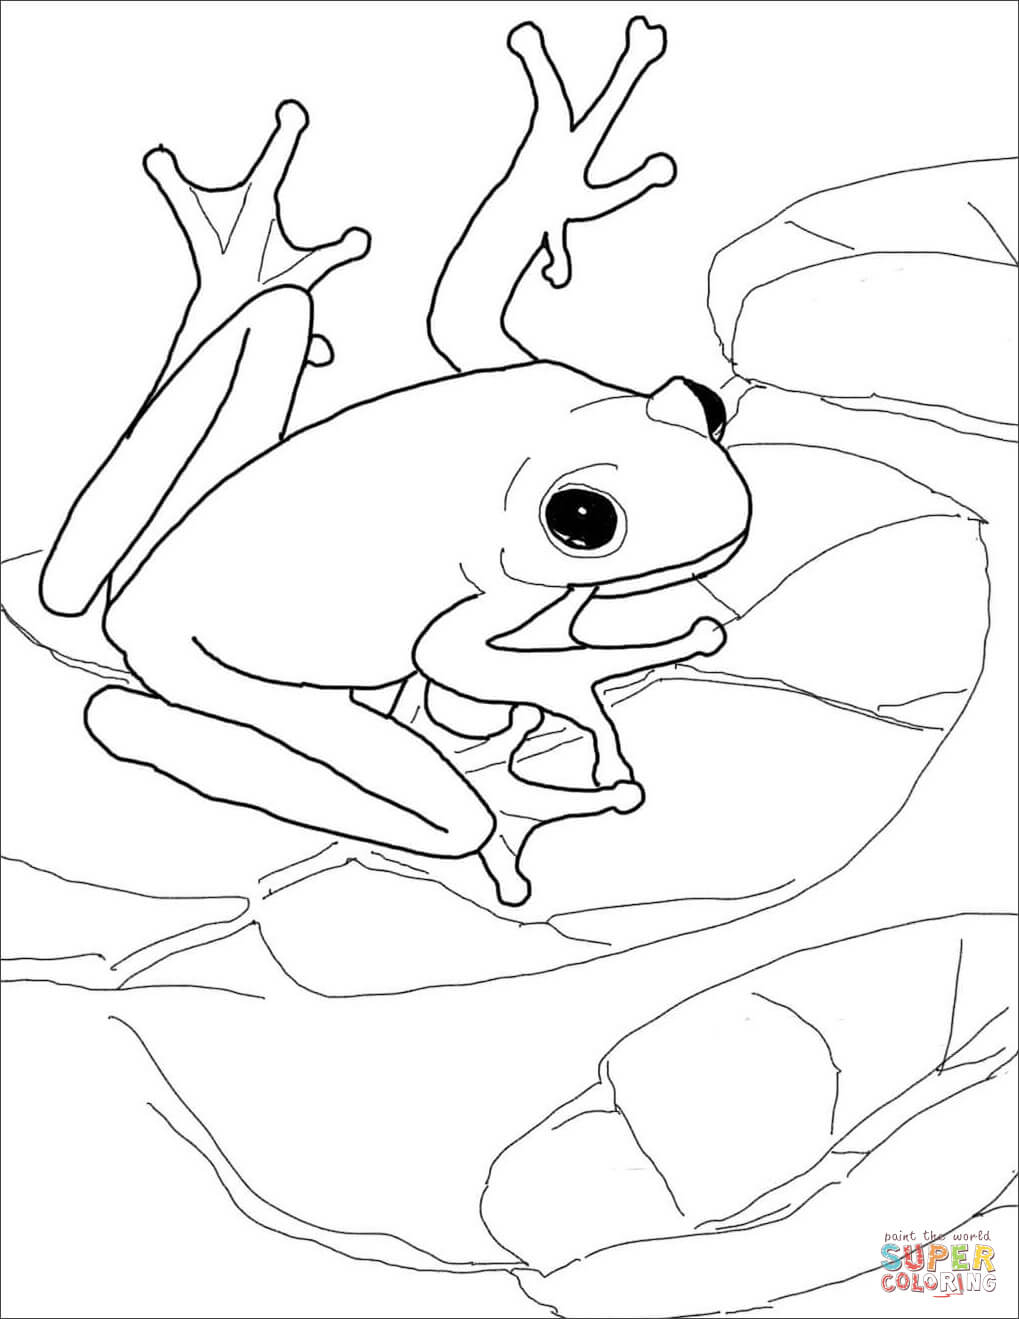 American Green Tree Frog Coloring Page | Free Printable Coloring Pages - Printable Frog Puzzle